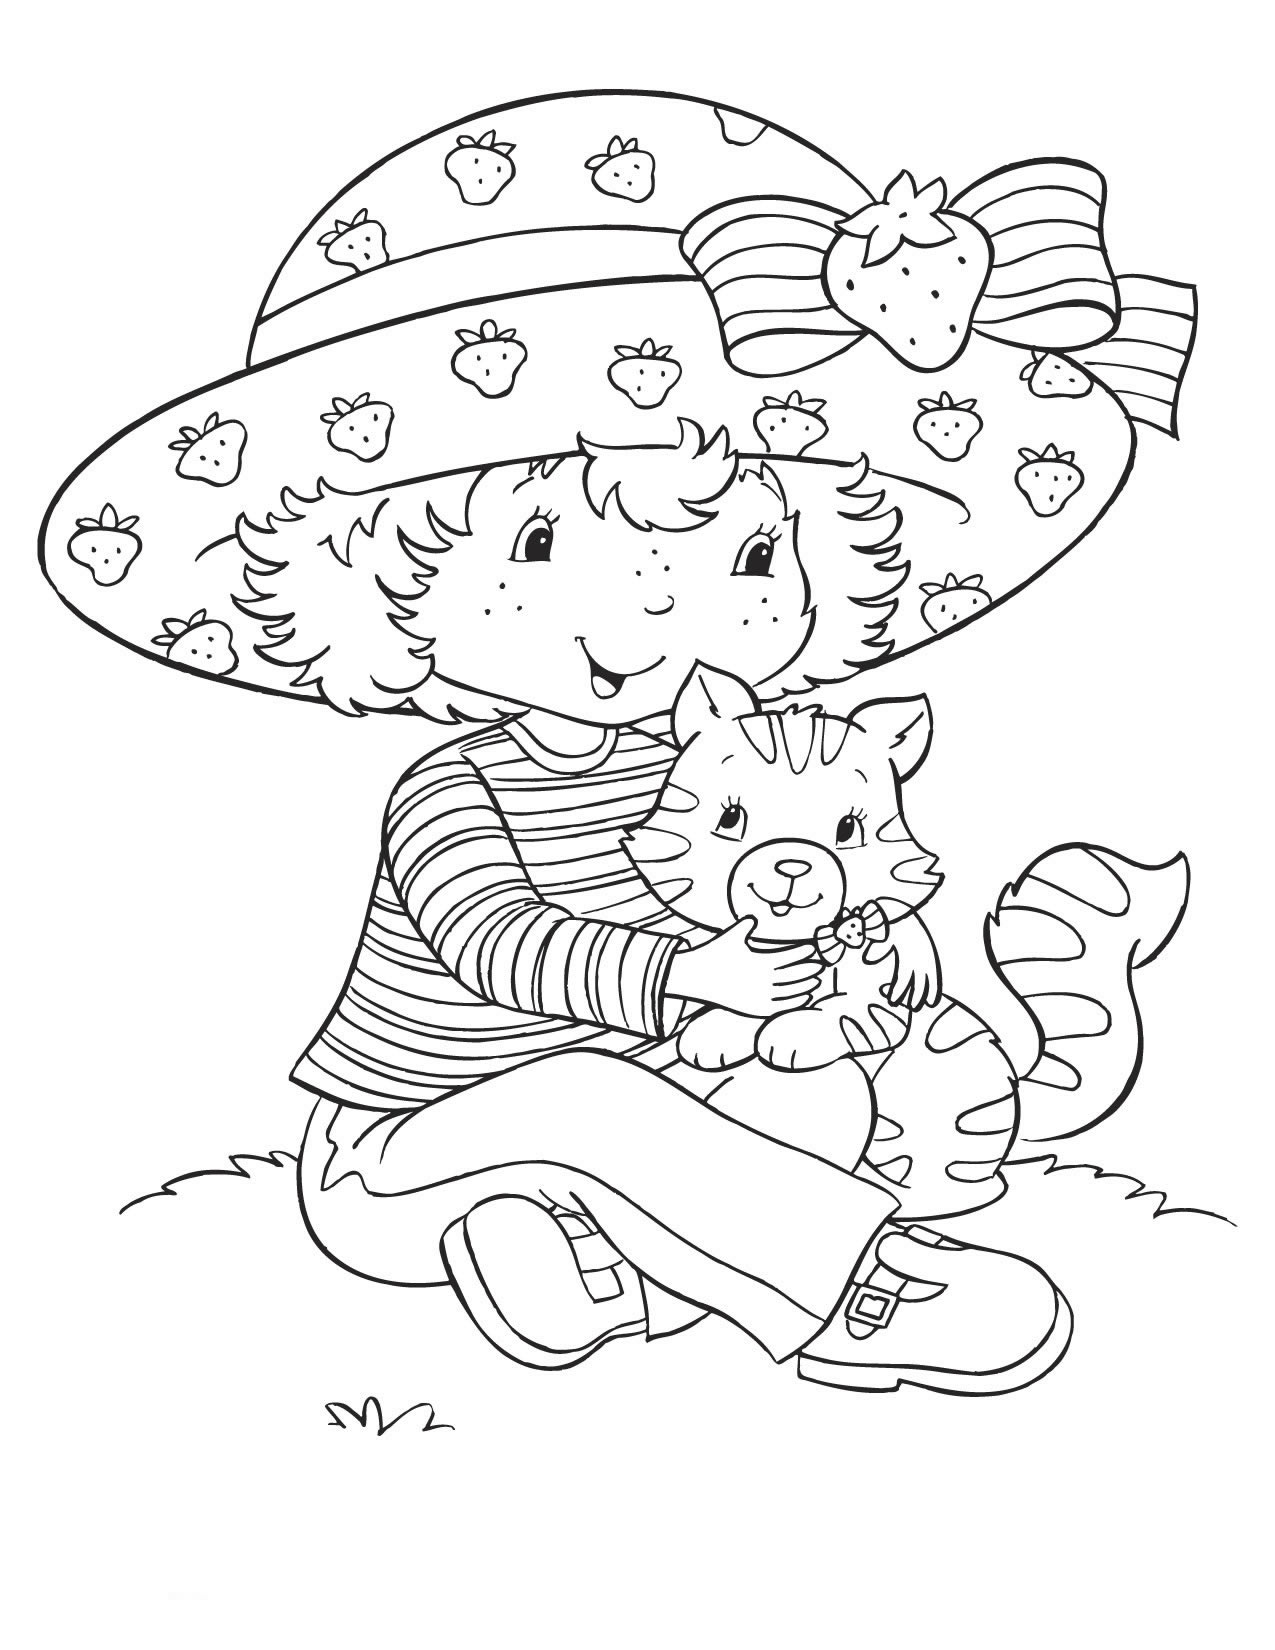 strawberry shortcake characters coloring pages strawberry shortcake coloring pages getcoloringpagescom strawberry shortcake characters coloring pages